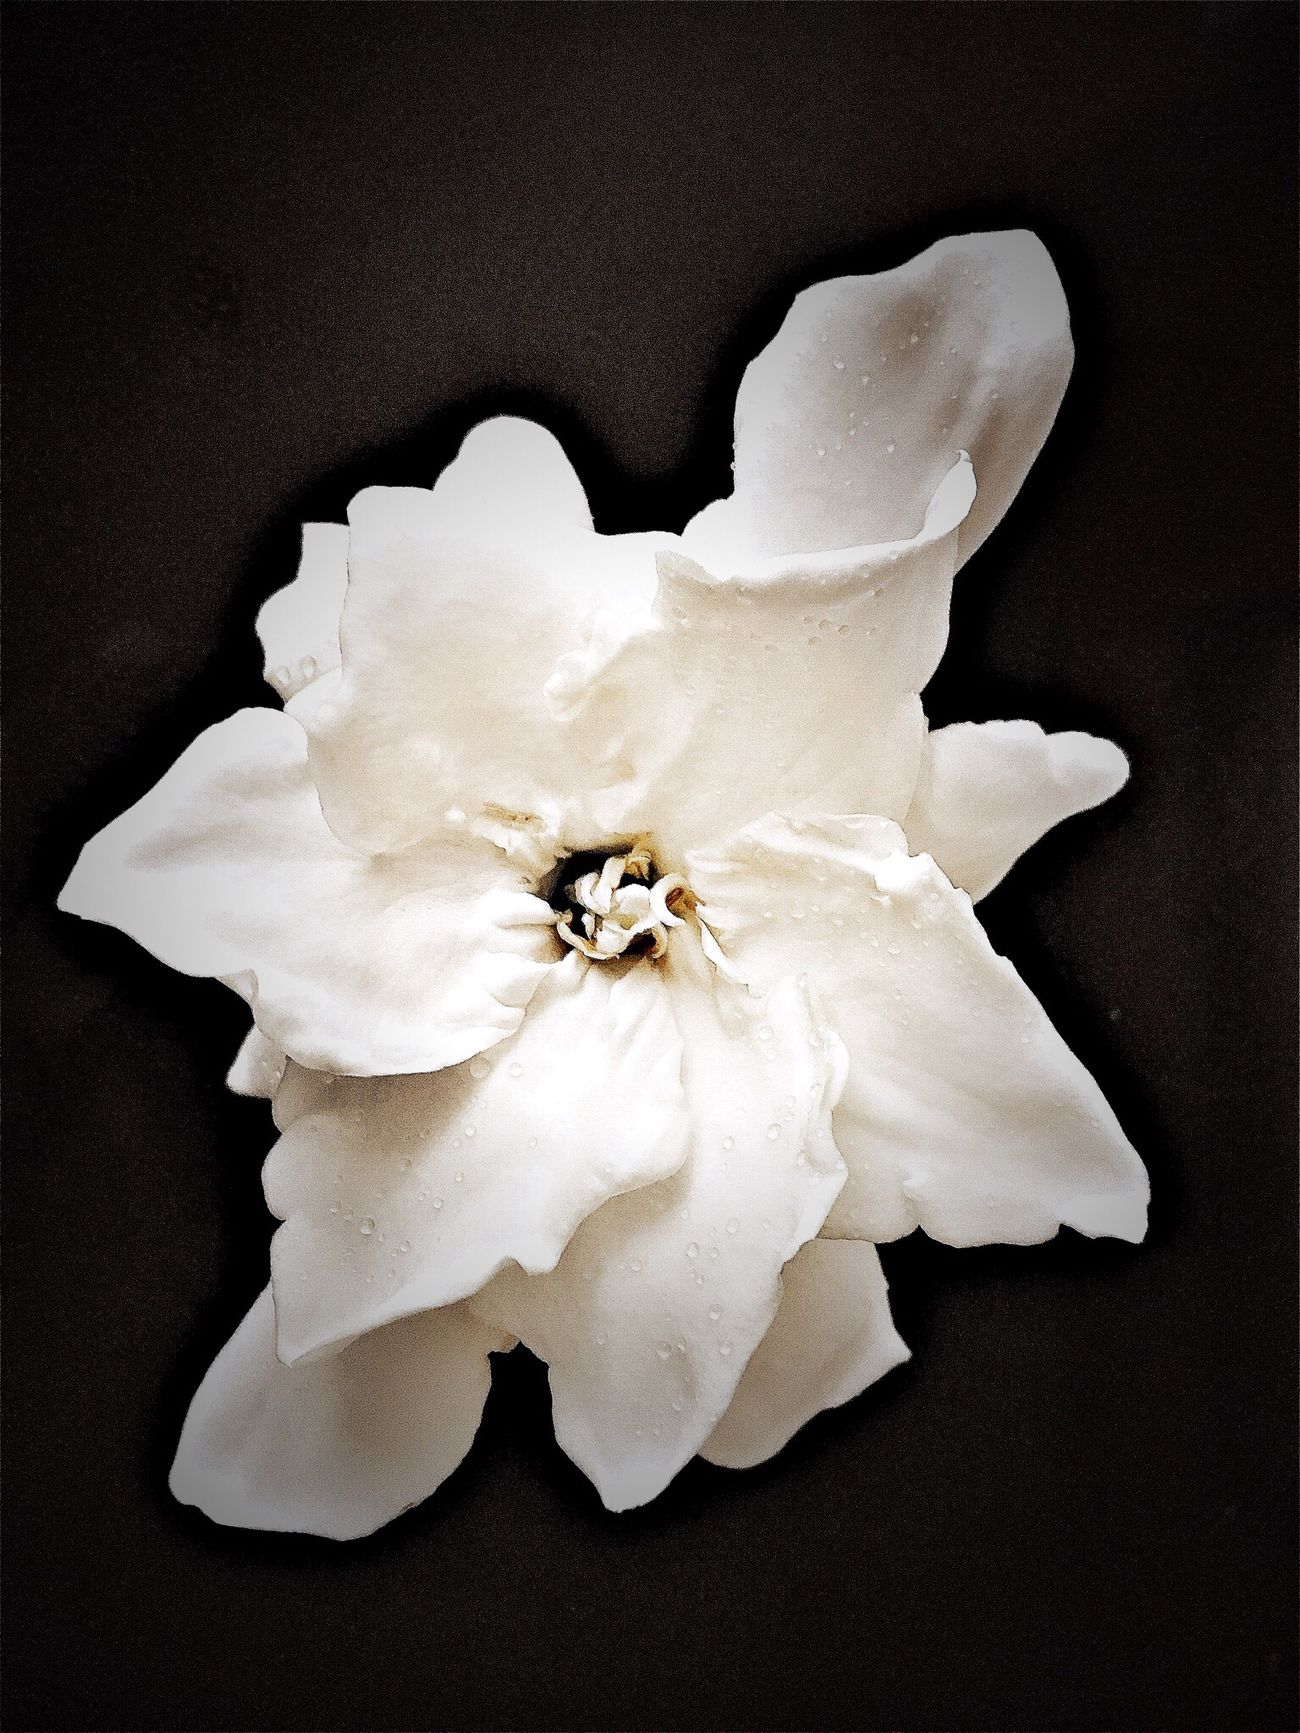 Beauty In Nature Flower Single Flower Black Background Botany Fragility NEM Black&white EyeEm Nature Lover Ladyphotographerofthemonth Flower Collection Flower Head Gardenia Close-up Blossom Flowerporn Tropical Flowers